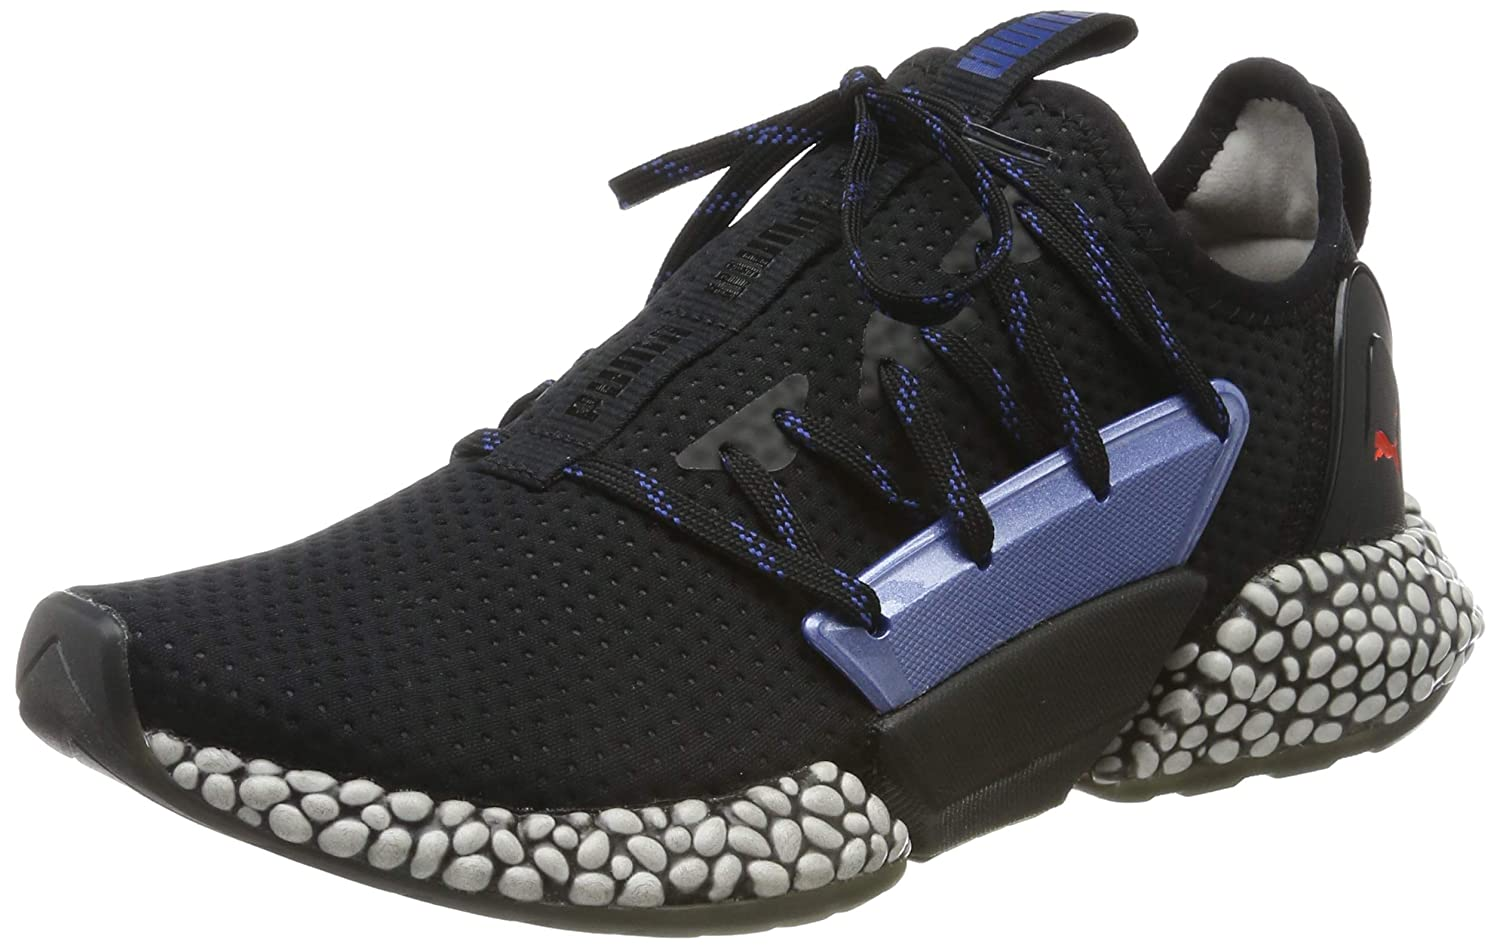 Puma Men's Hybrid Rocket Aero Running Shoes